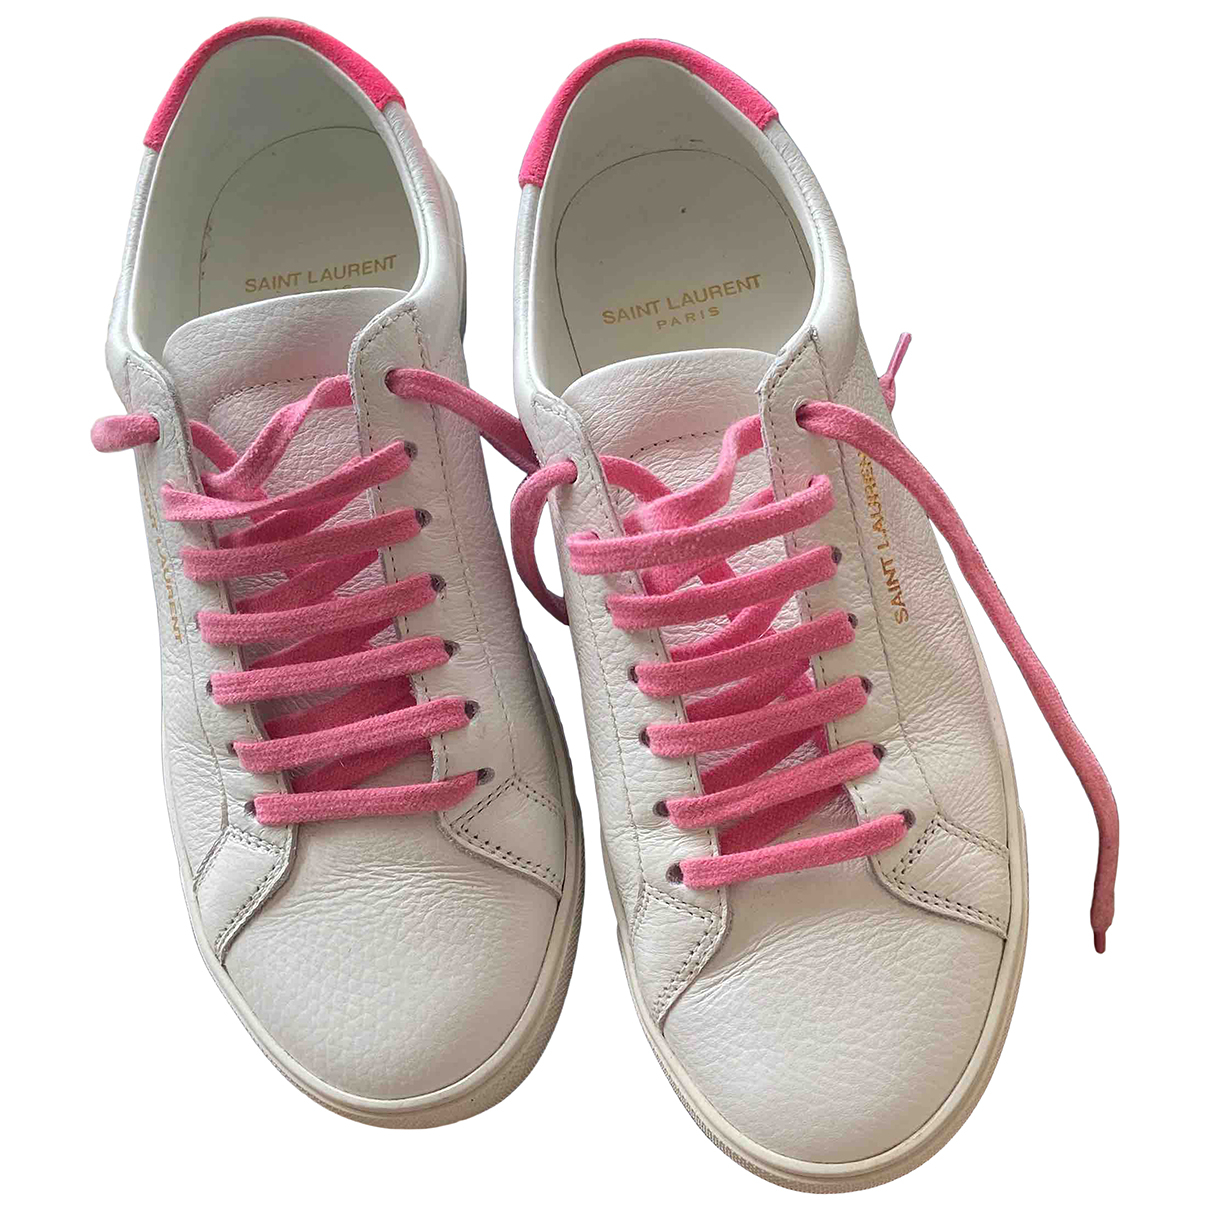 Saint Laurent Andy White Leather Trainers for Women 37 EU